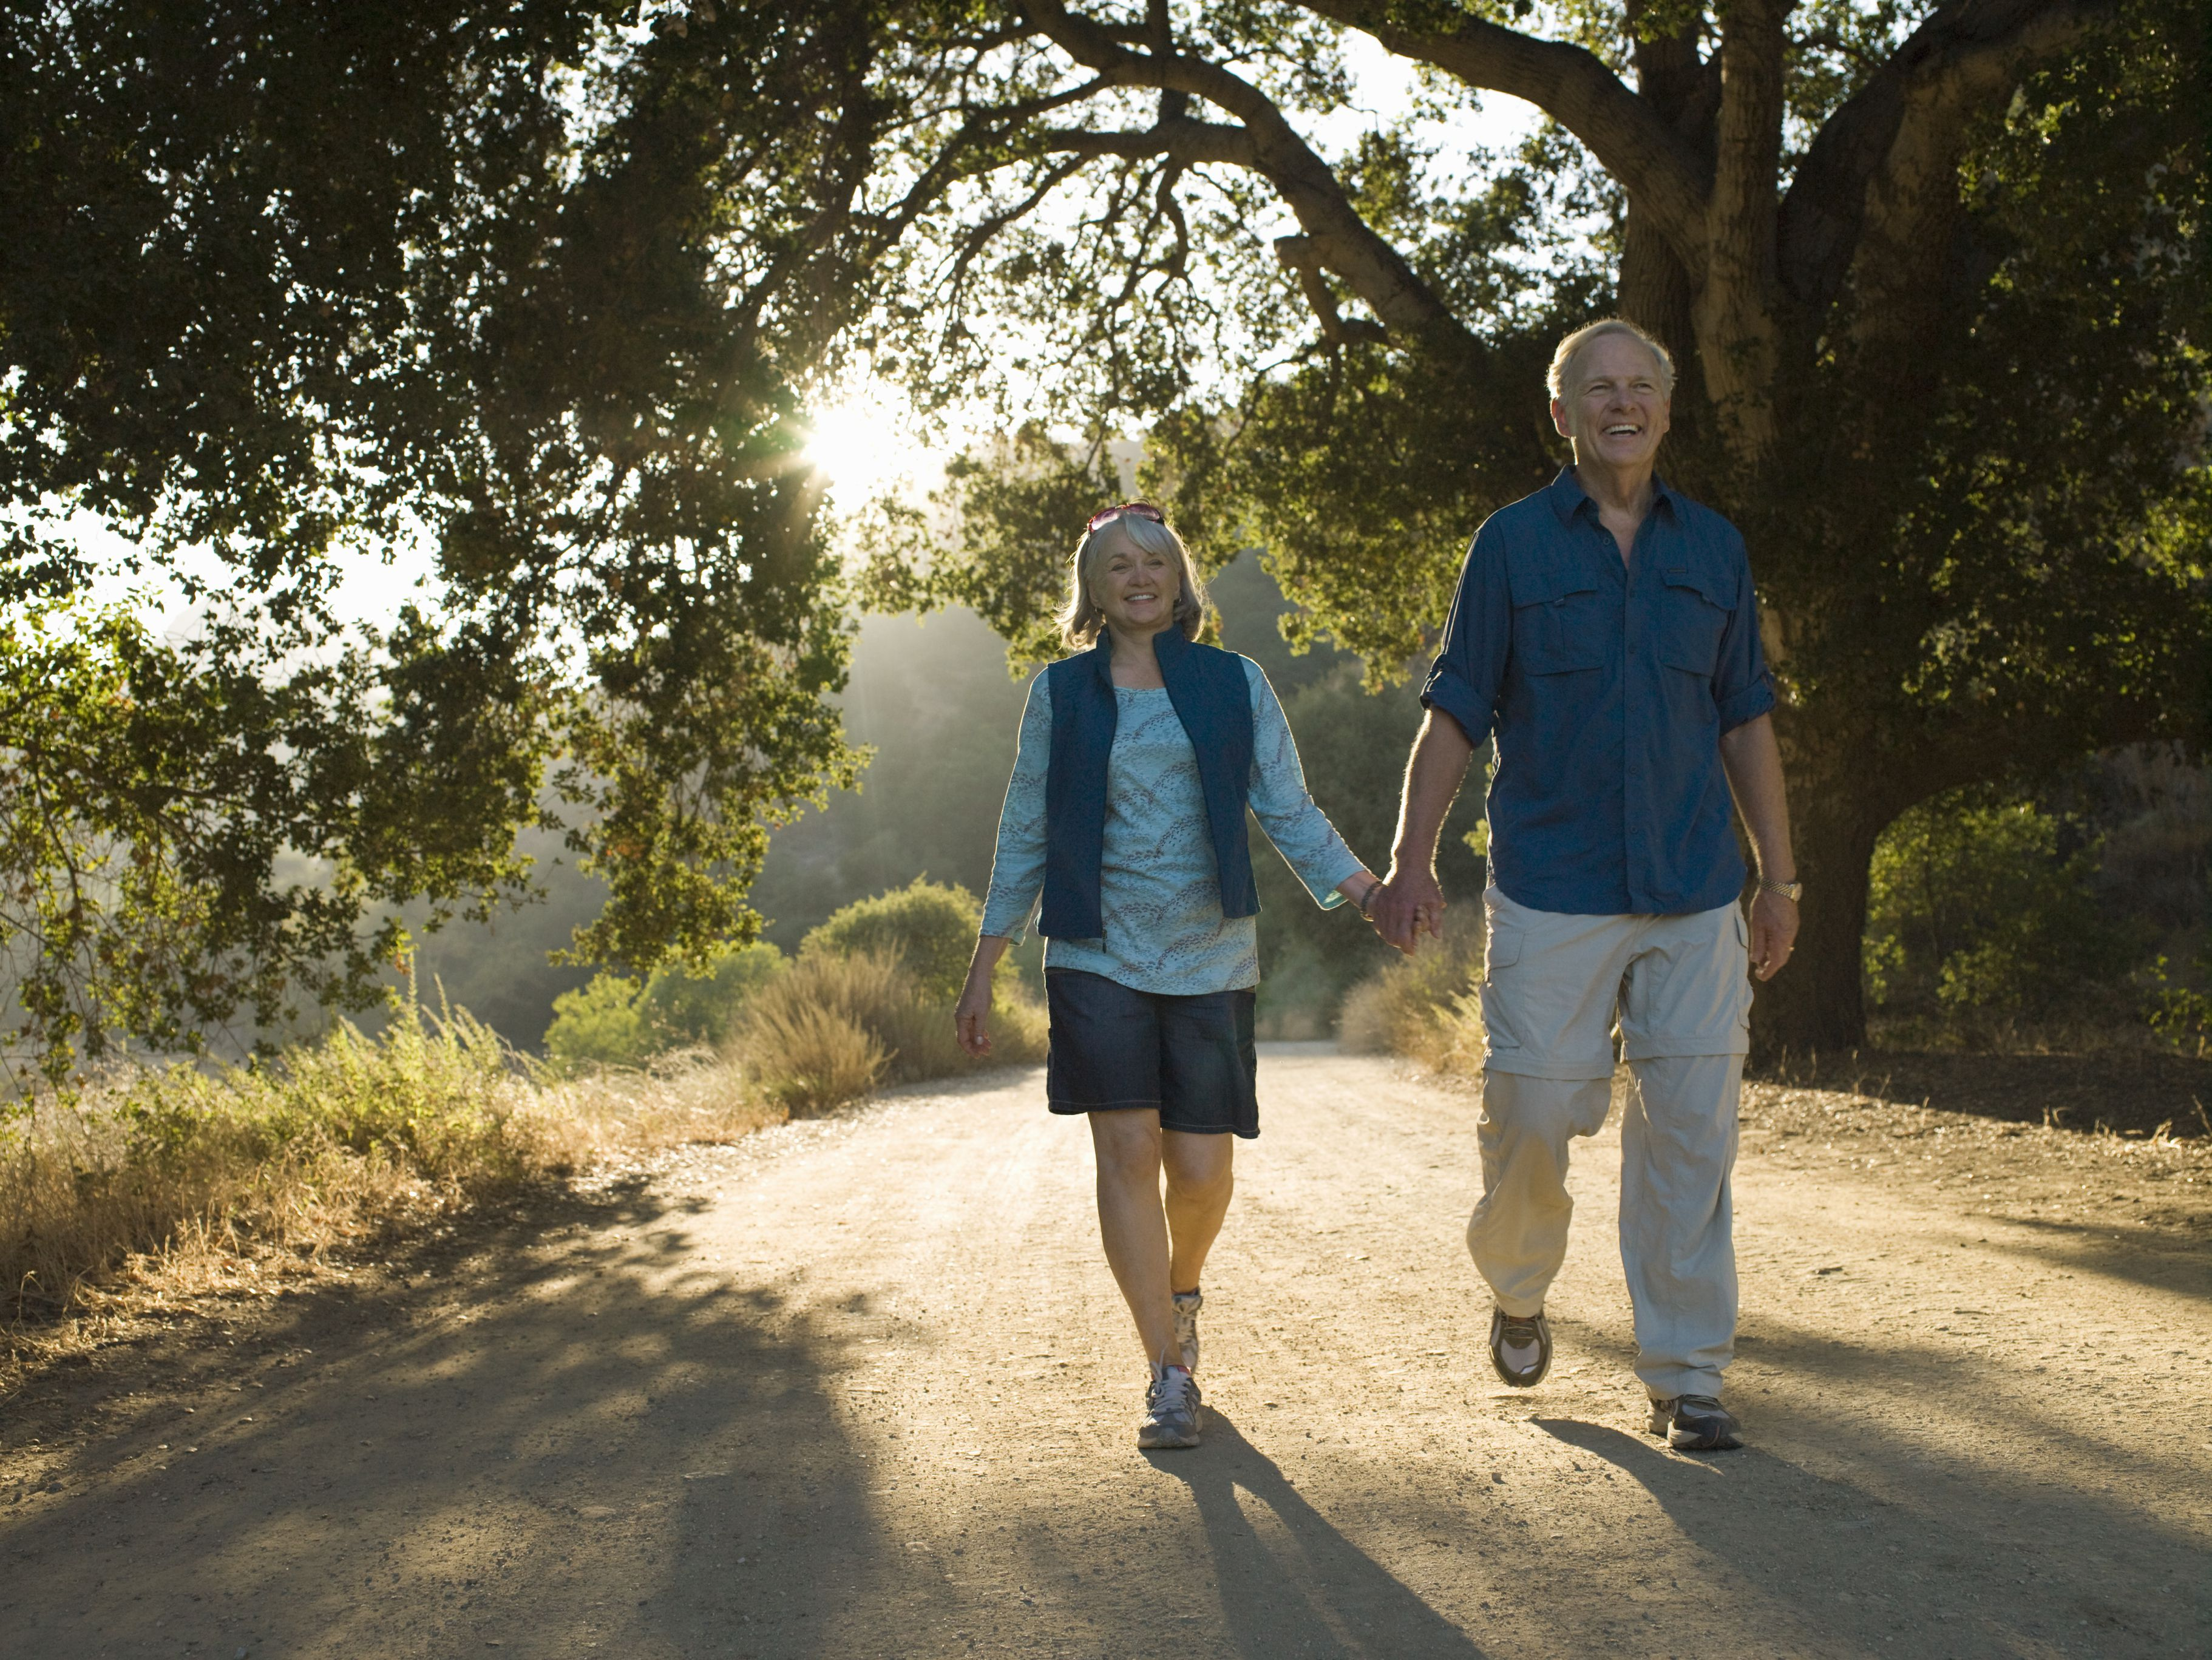 Mature couple walking on natural path